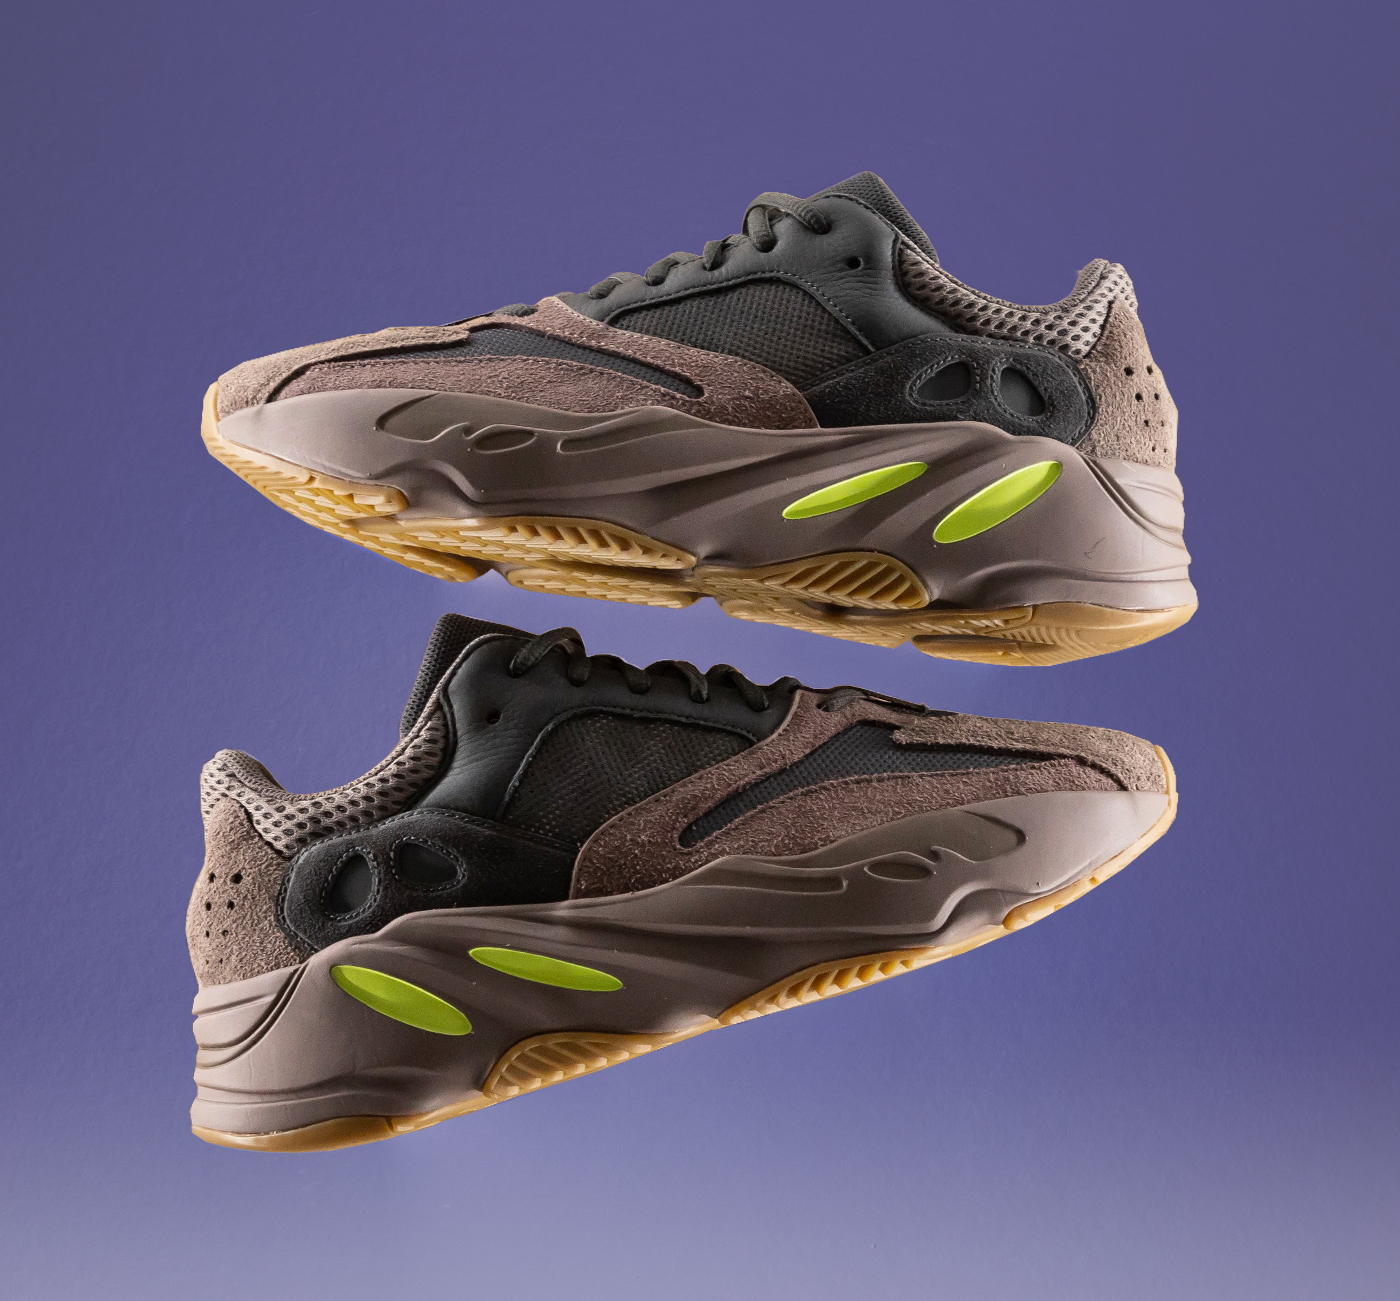 70d035a8cfe Stadium Goods  Available Now  adidas Yeezy Boost 700